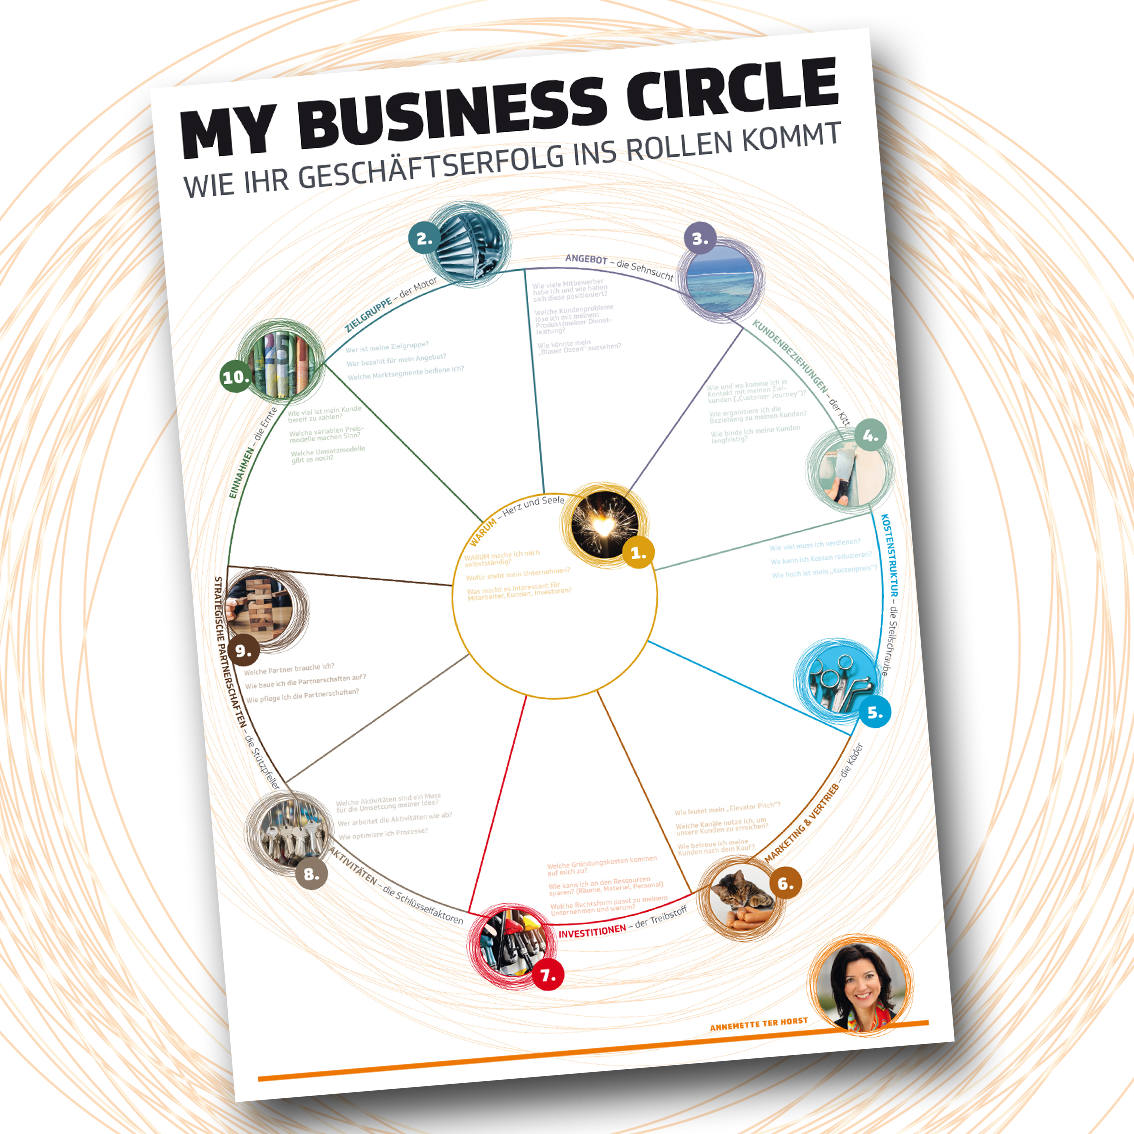 https://welcome.mybusinesscircle.de/wp-content/uploads/2019/05/Chart-Teaser_frei.png